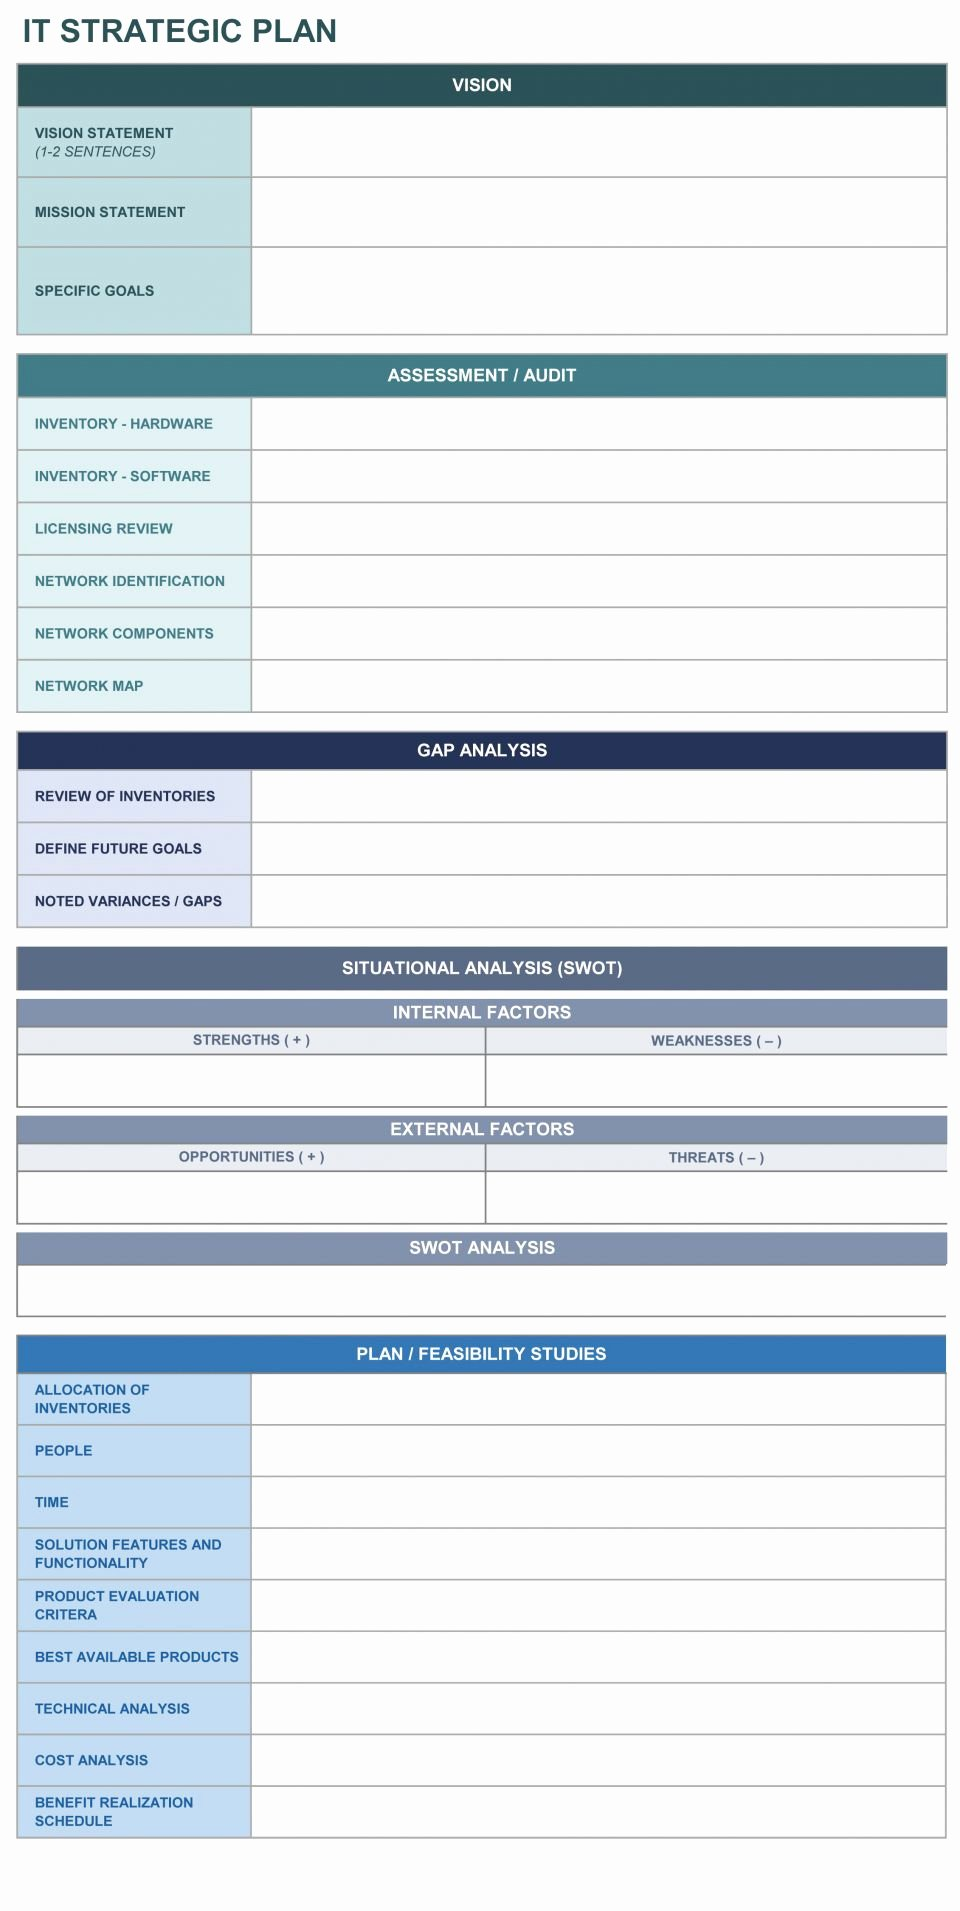 Strategic Plan Template Free Fresh Beginner's Guide to It Infrastructure Management